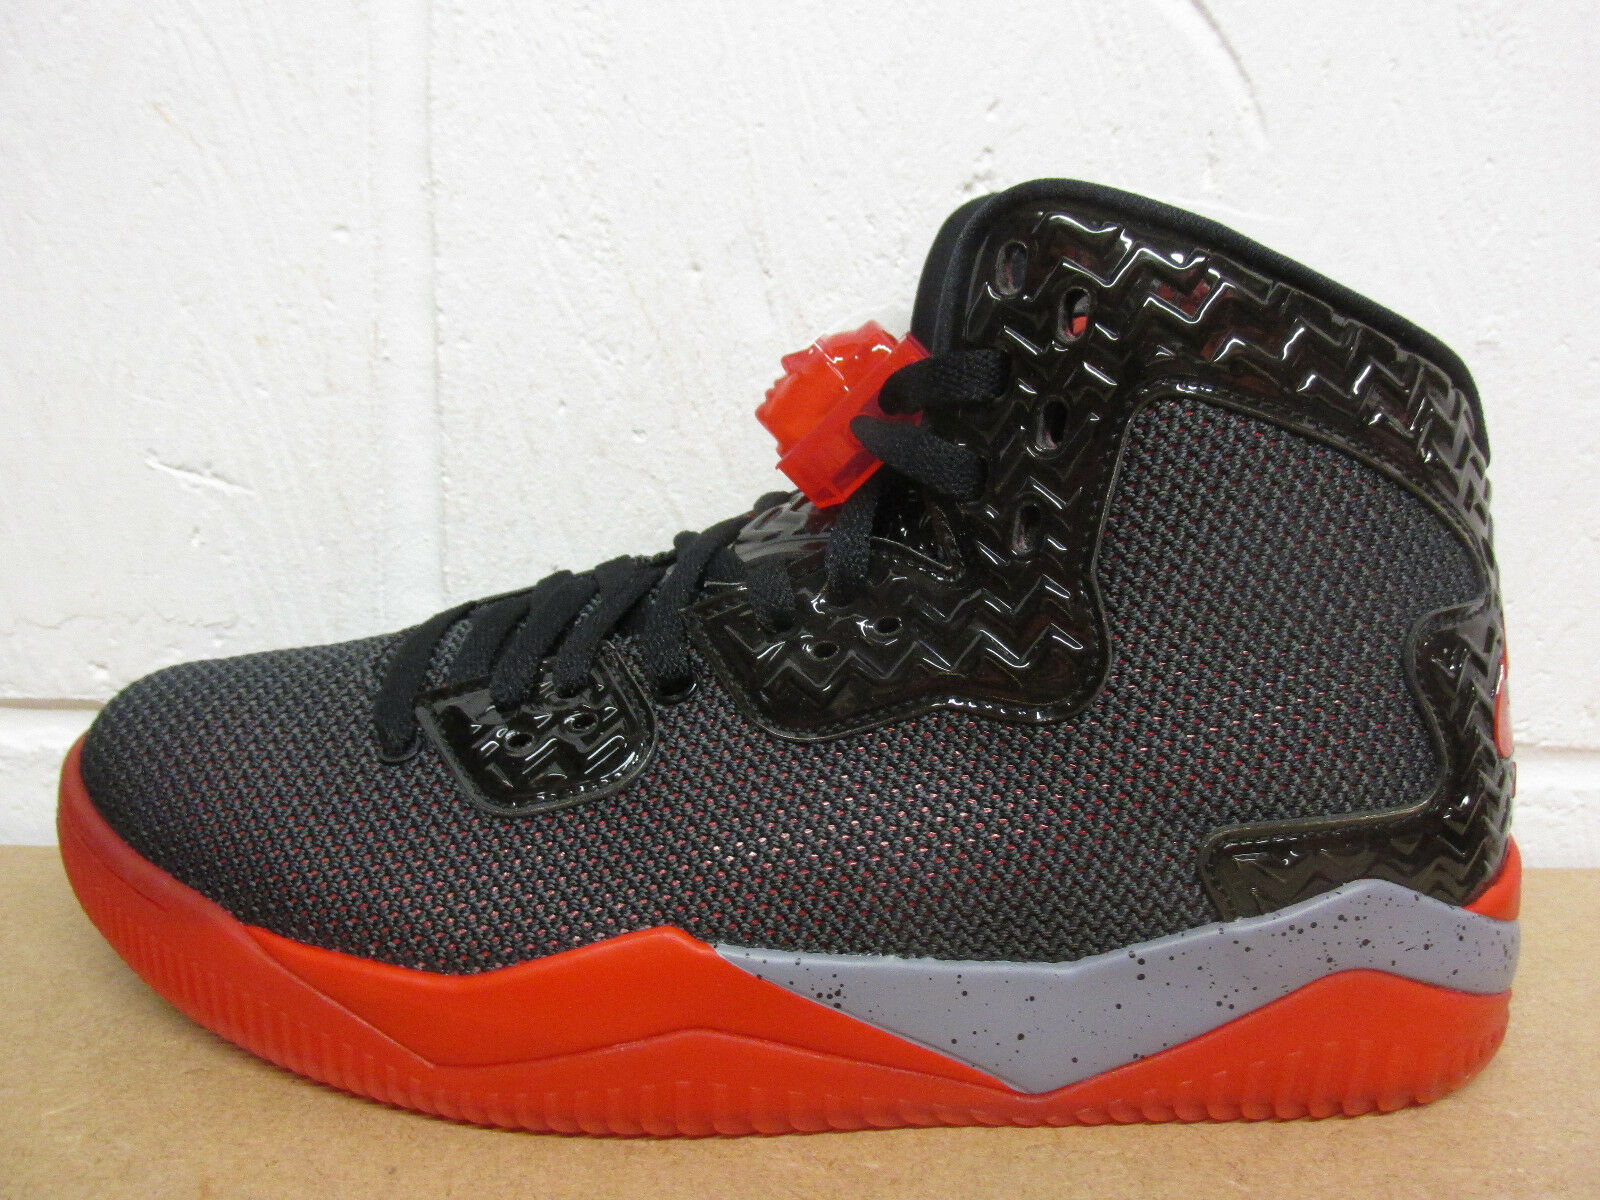 Nike Air Jordan Clous Forty Pe Tennis Basketball Hommes 807541 002 Enlèvement